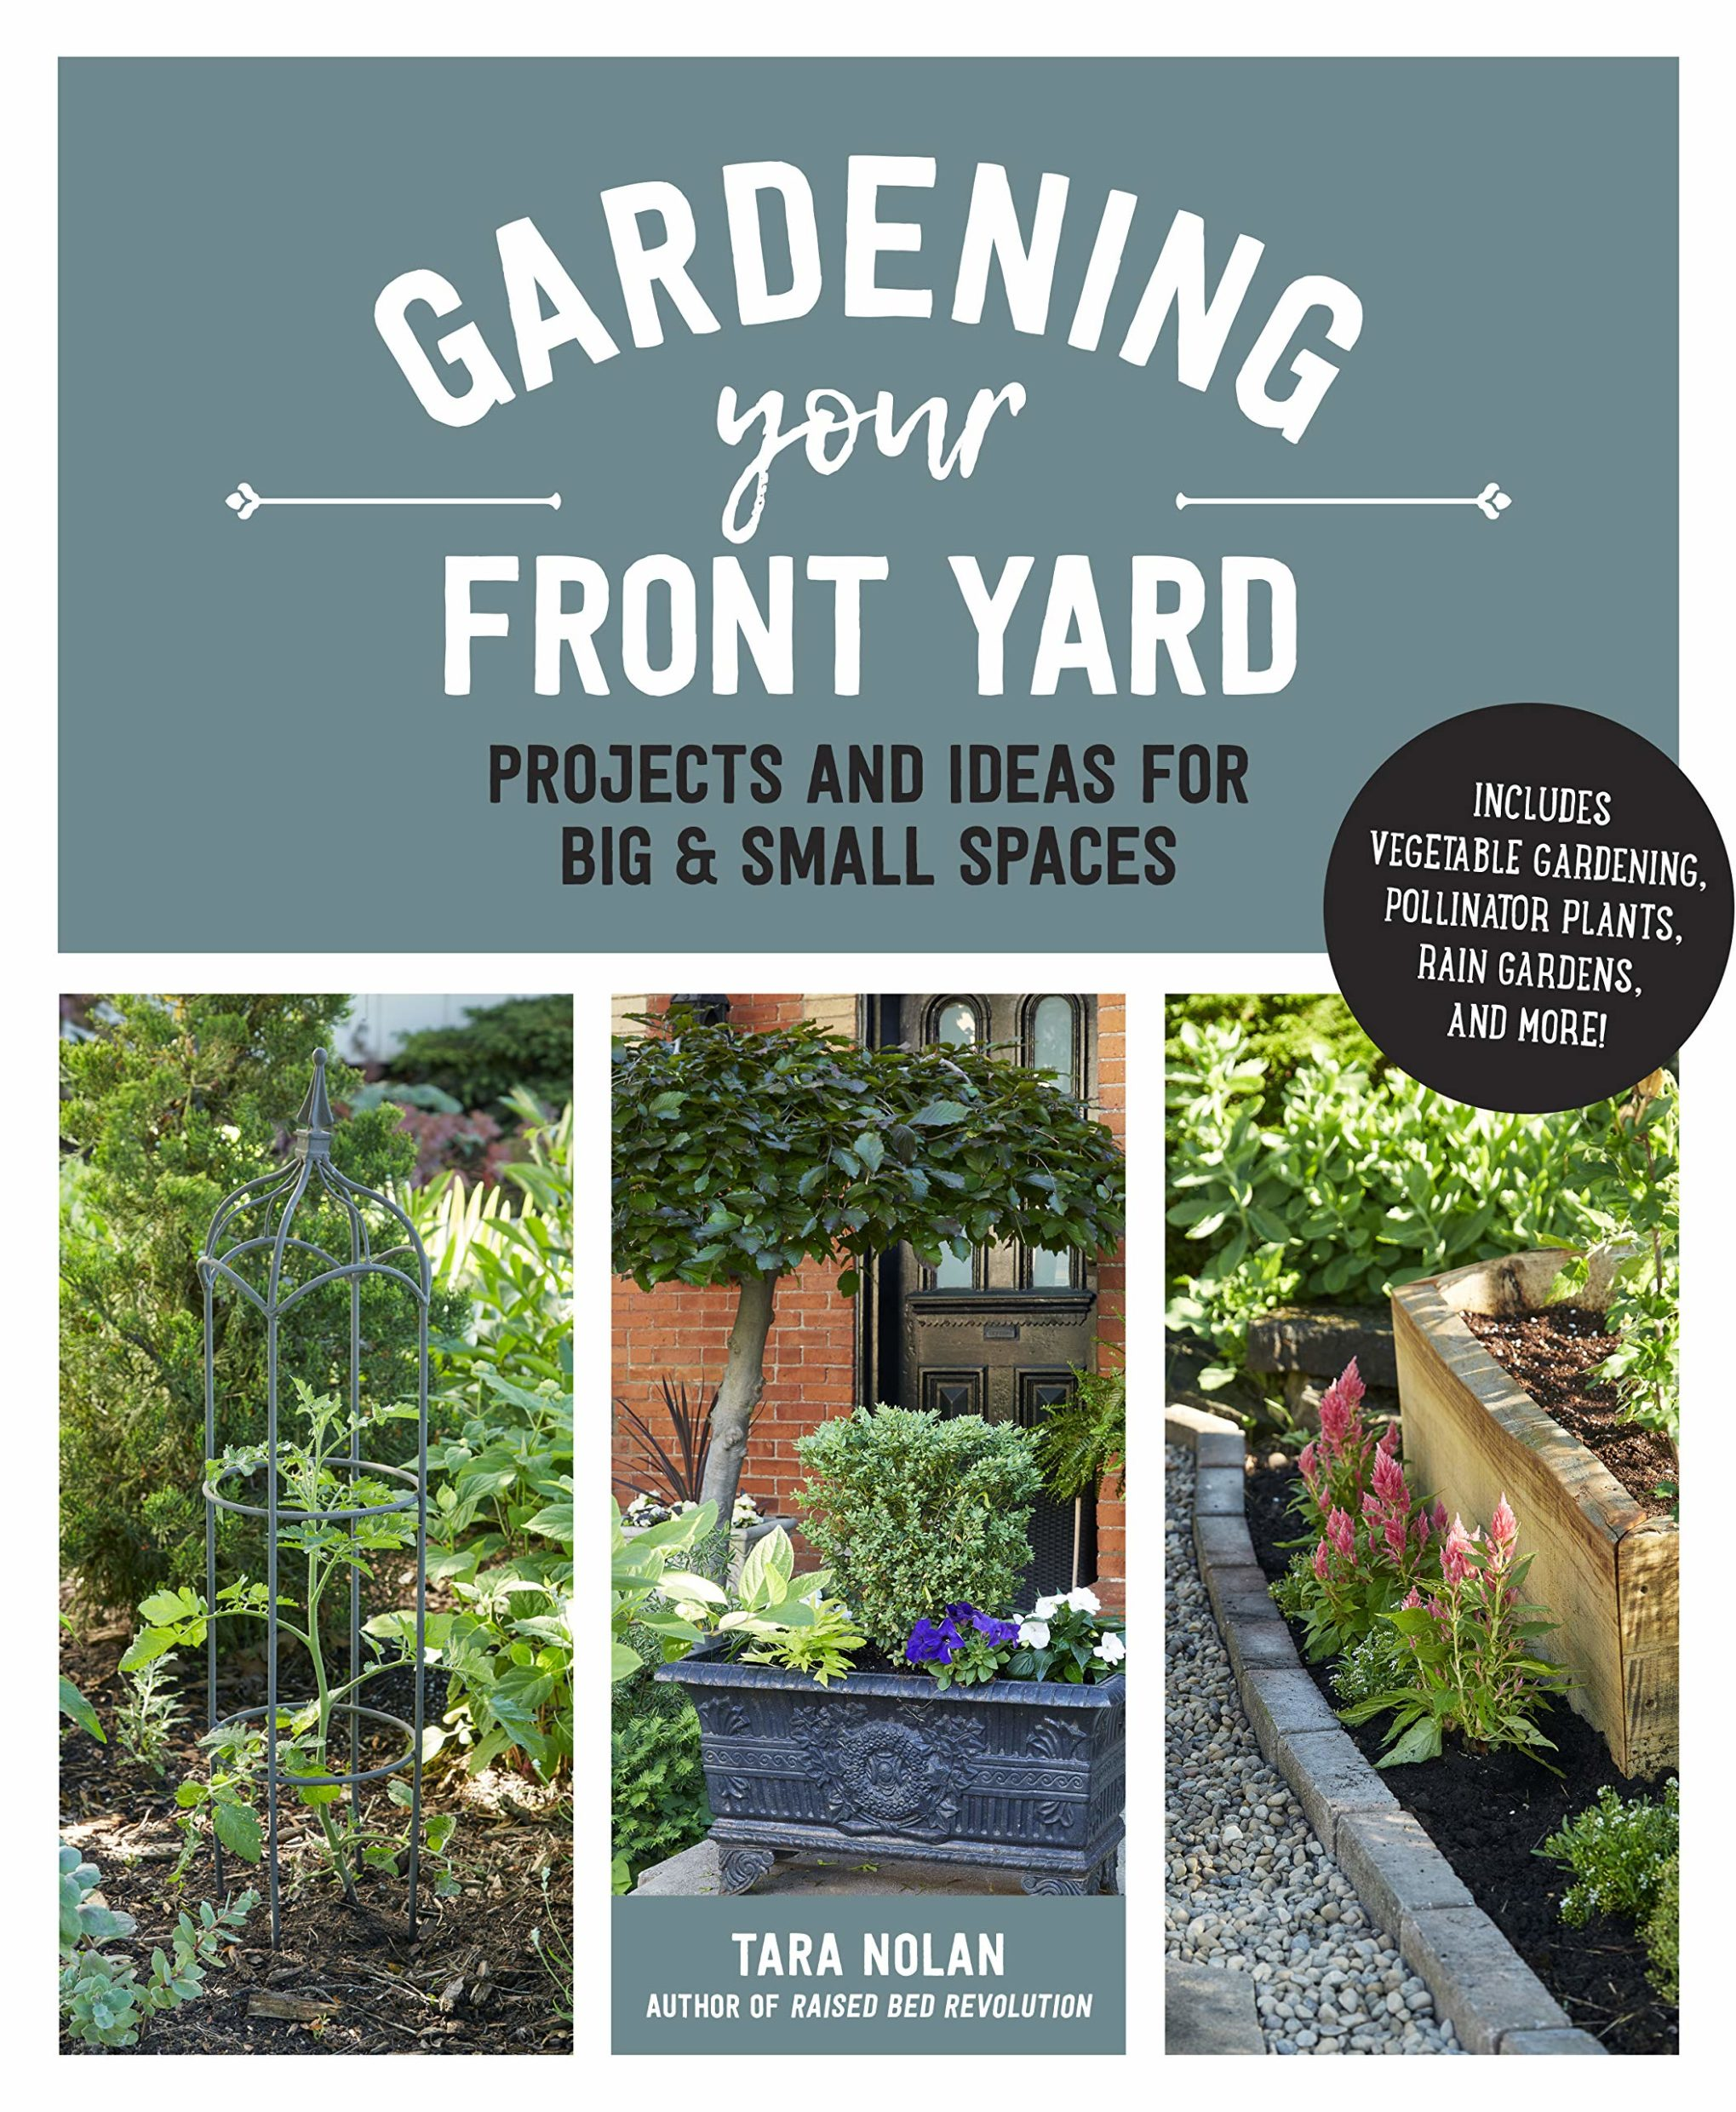 Gardening Your Front Yard: Projects and Ideas for Big and Small Spaces - Includes Vegetable Gardening, Pollinator Plants, Rain Gardens, and More!